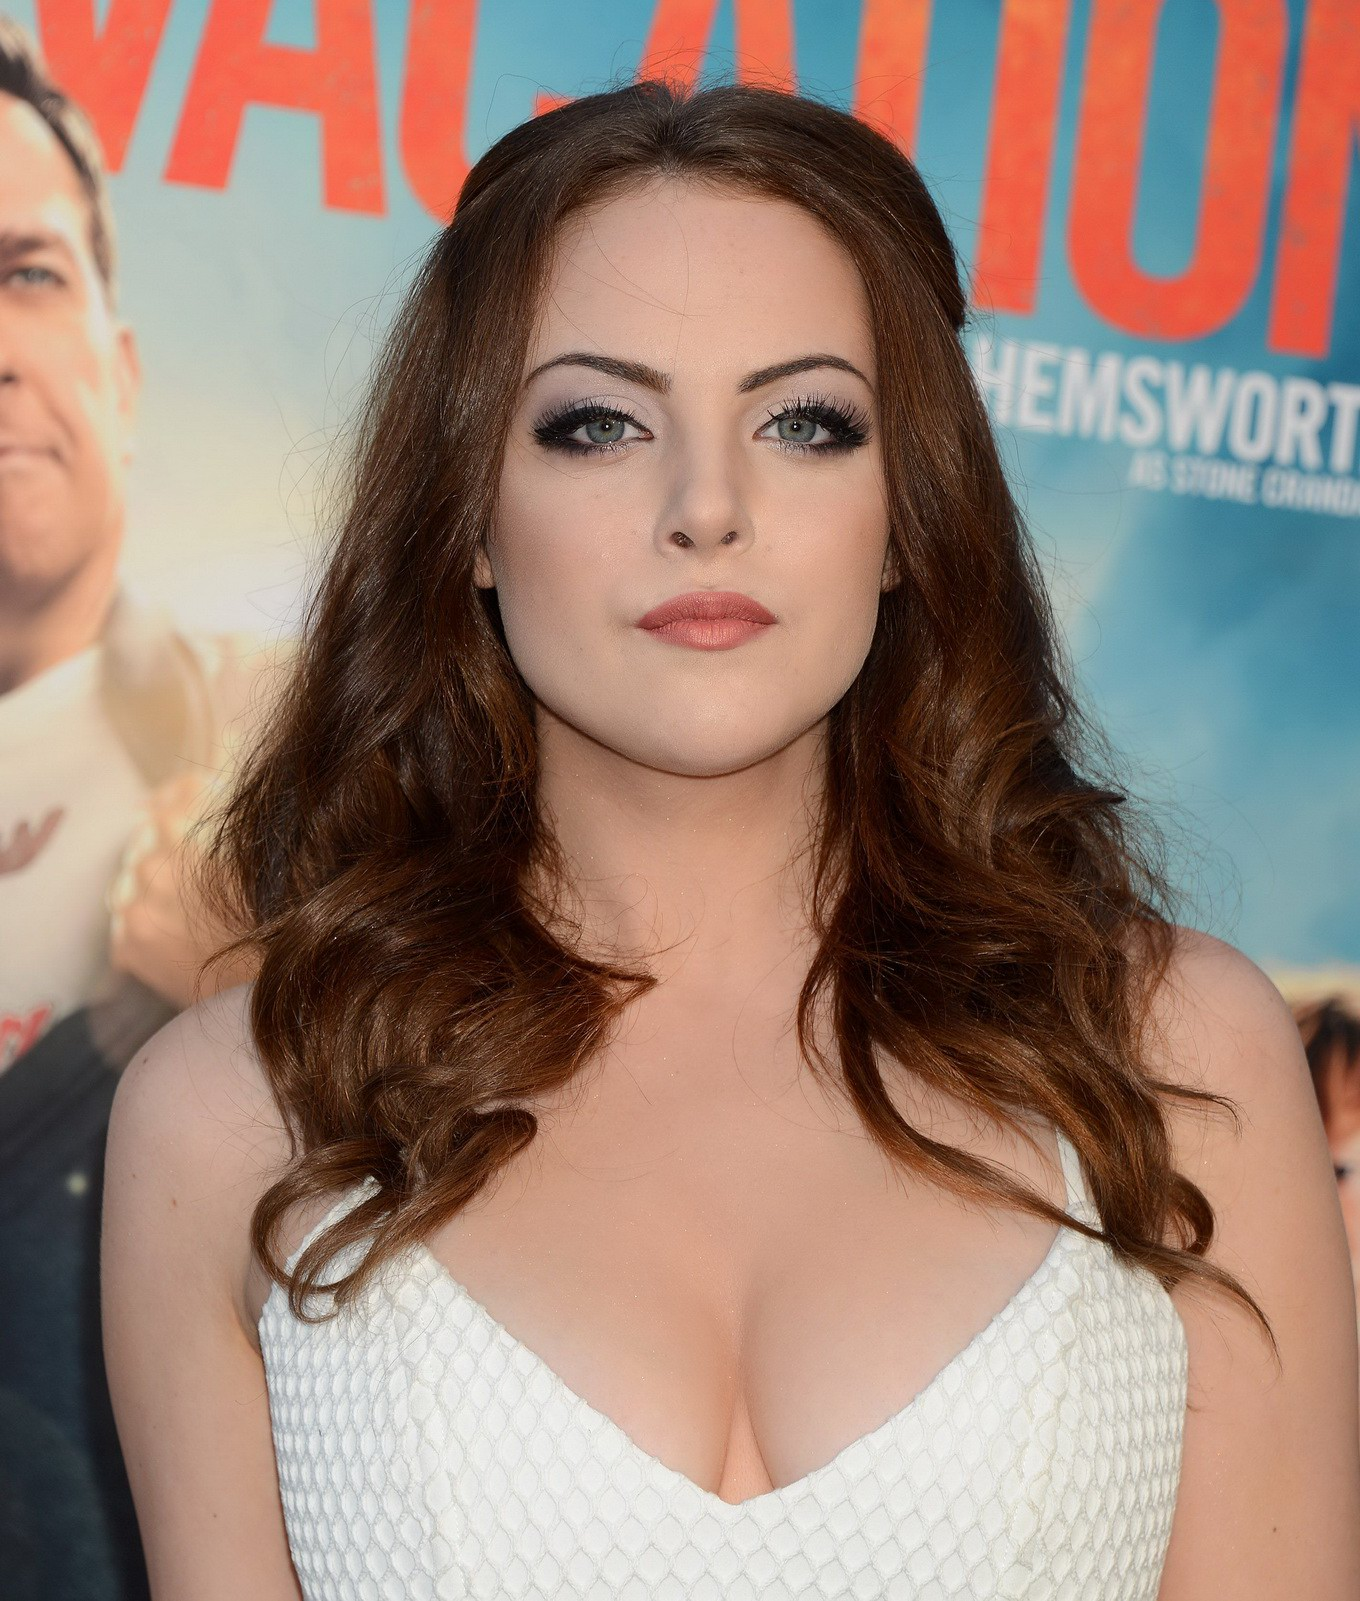 elizabeth gillies showing huge cleavage in white mini dress at the